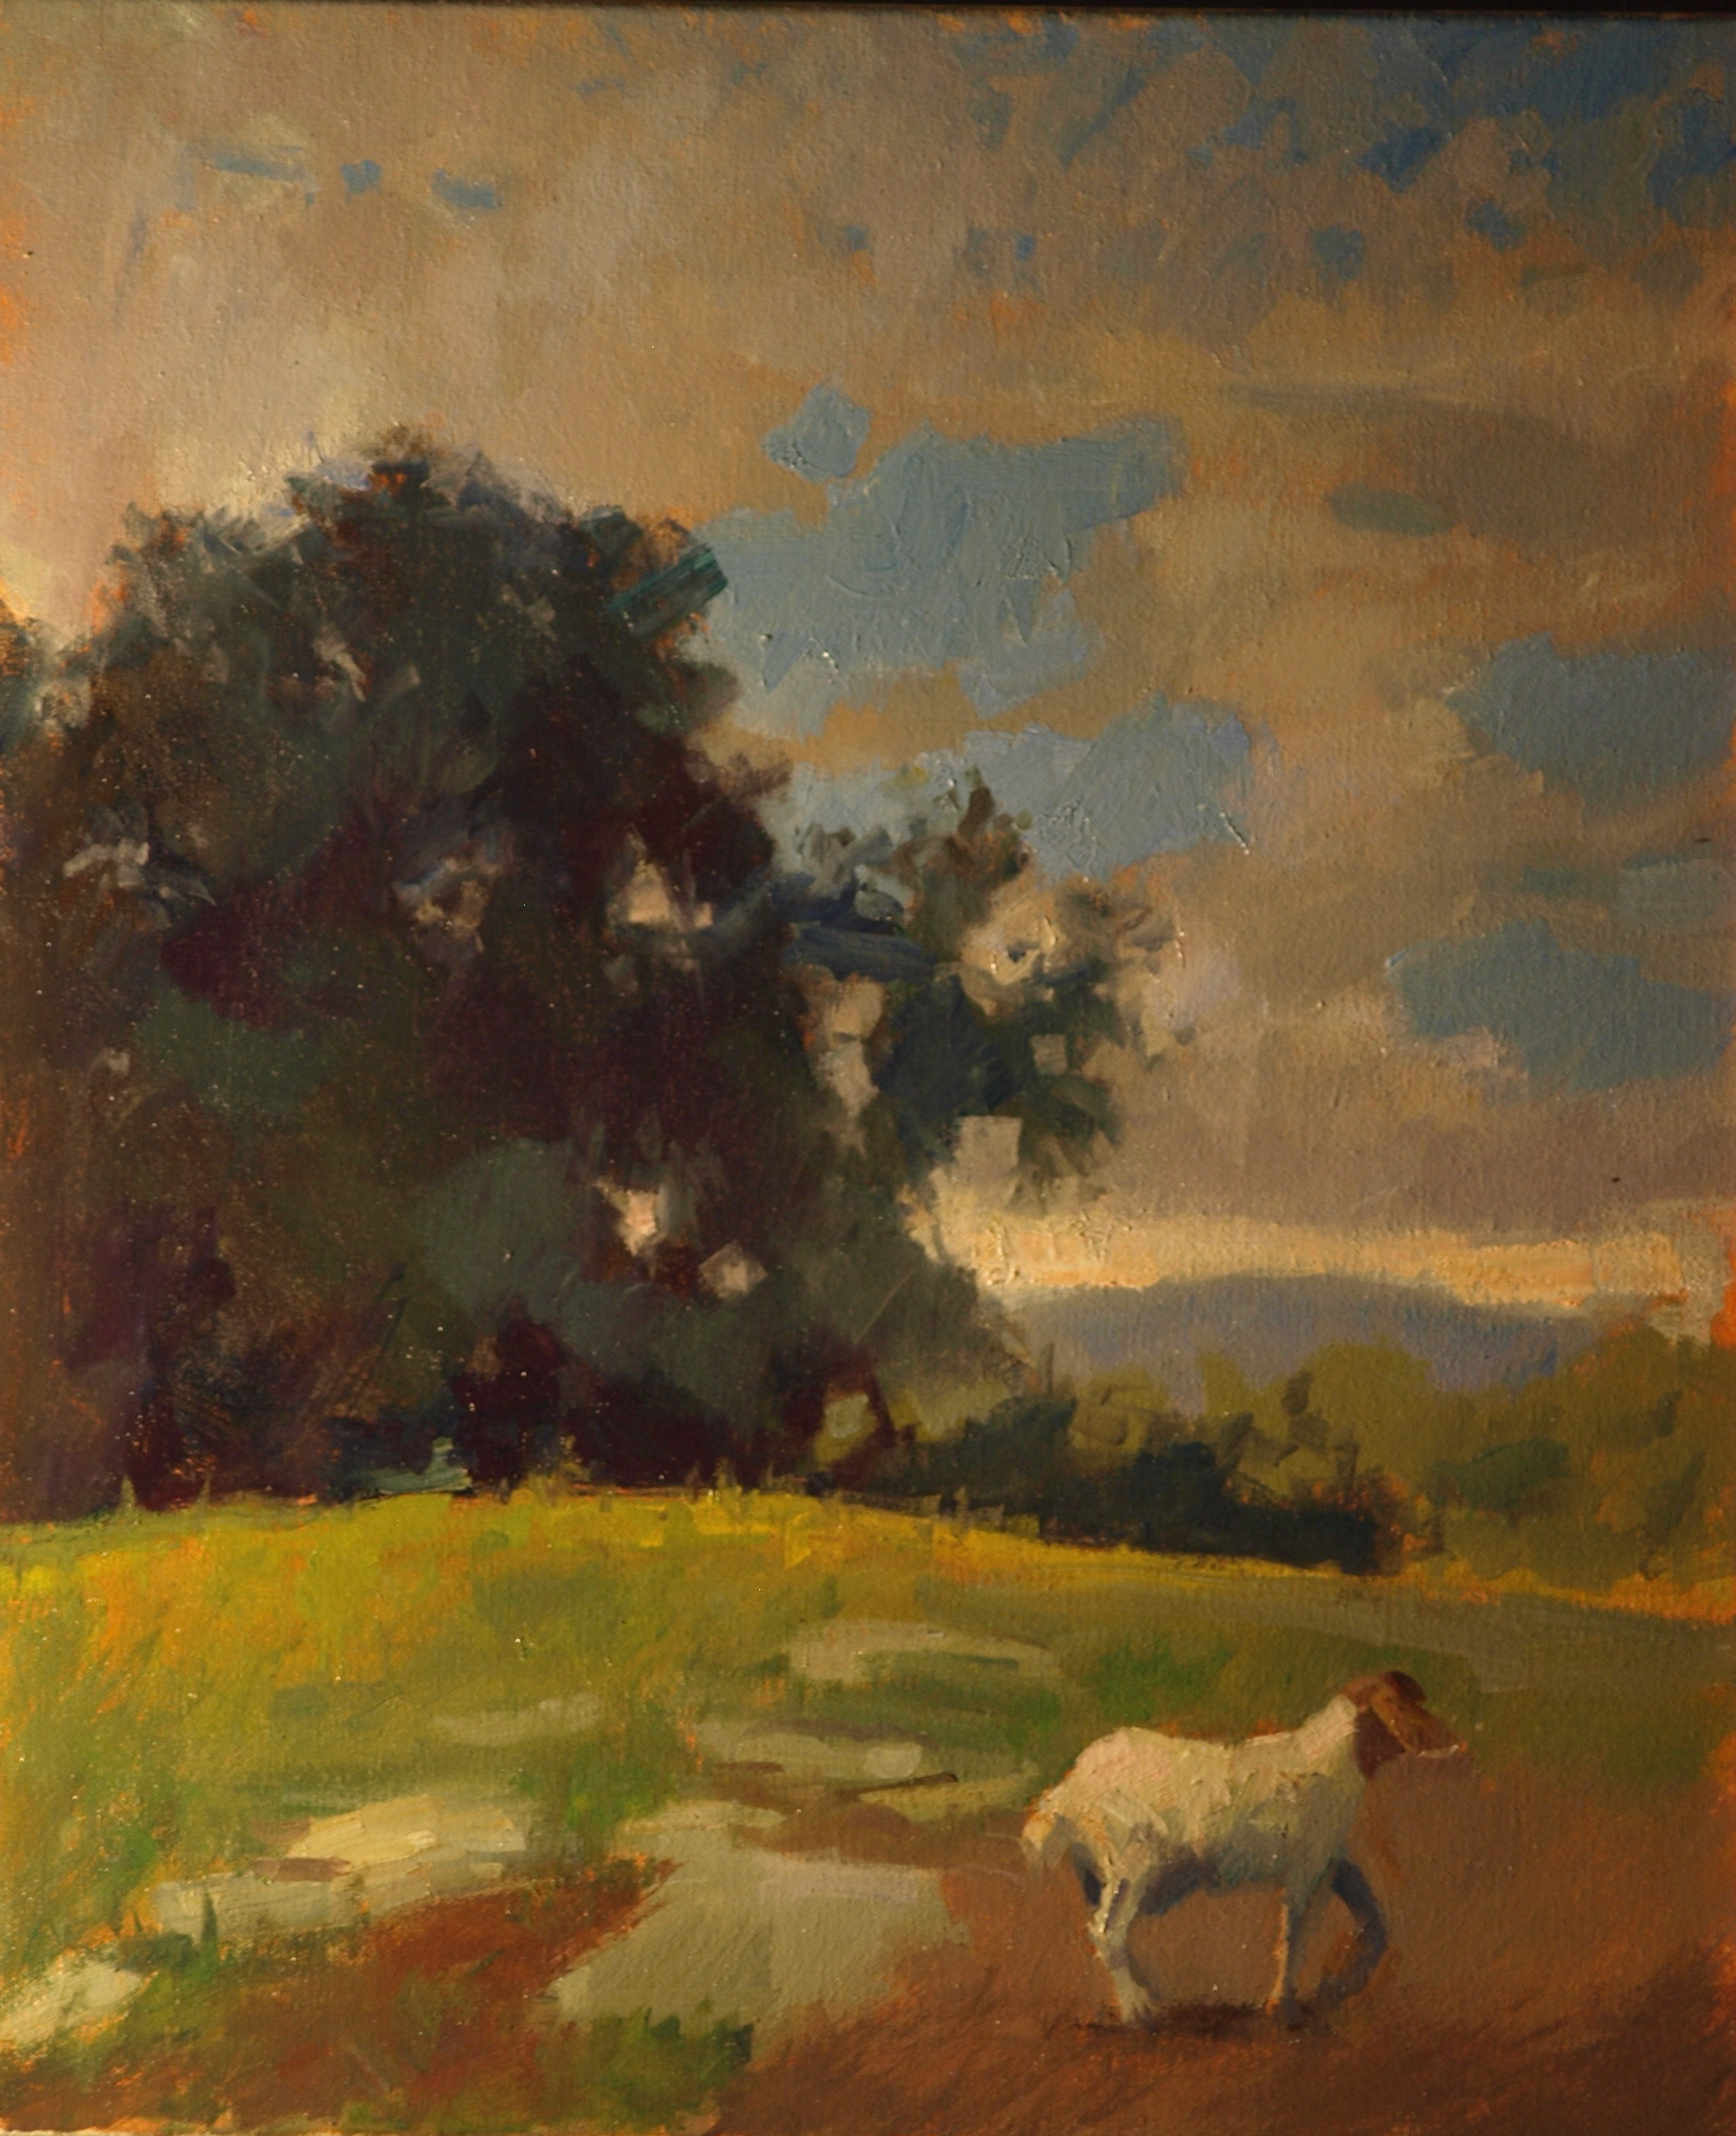 Goat Pasture, Oil on Canvas, 24 x 20 Inches, by Susan Grisell, $650